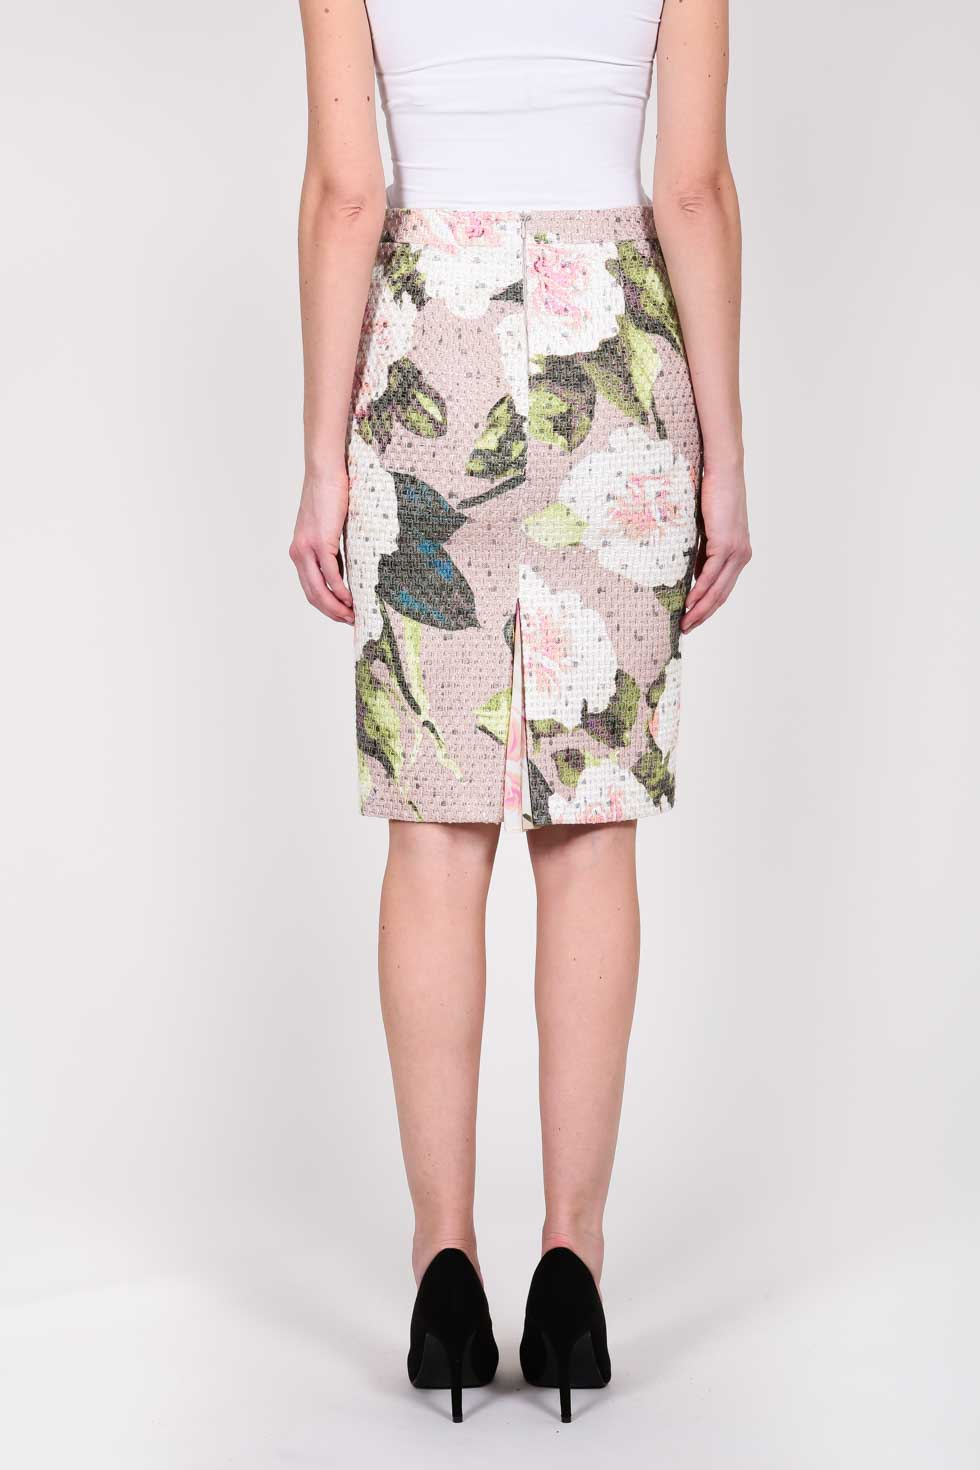 ELISA FANTI S/S 2021 SERIE EFDreamingFlowers GONNA MIDI A TUBINO IN TWEED CON STAMPA FIORI